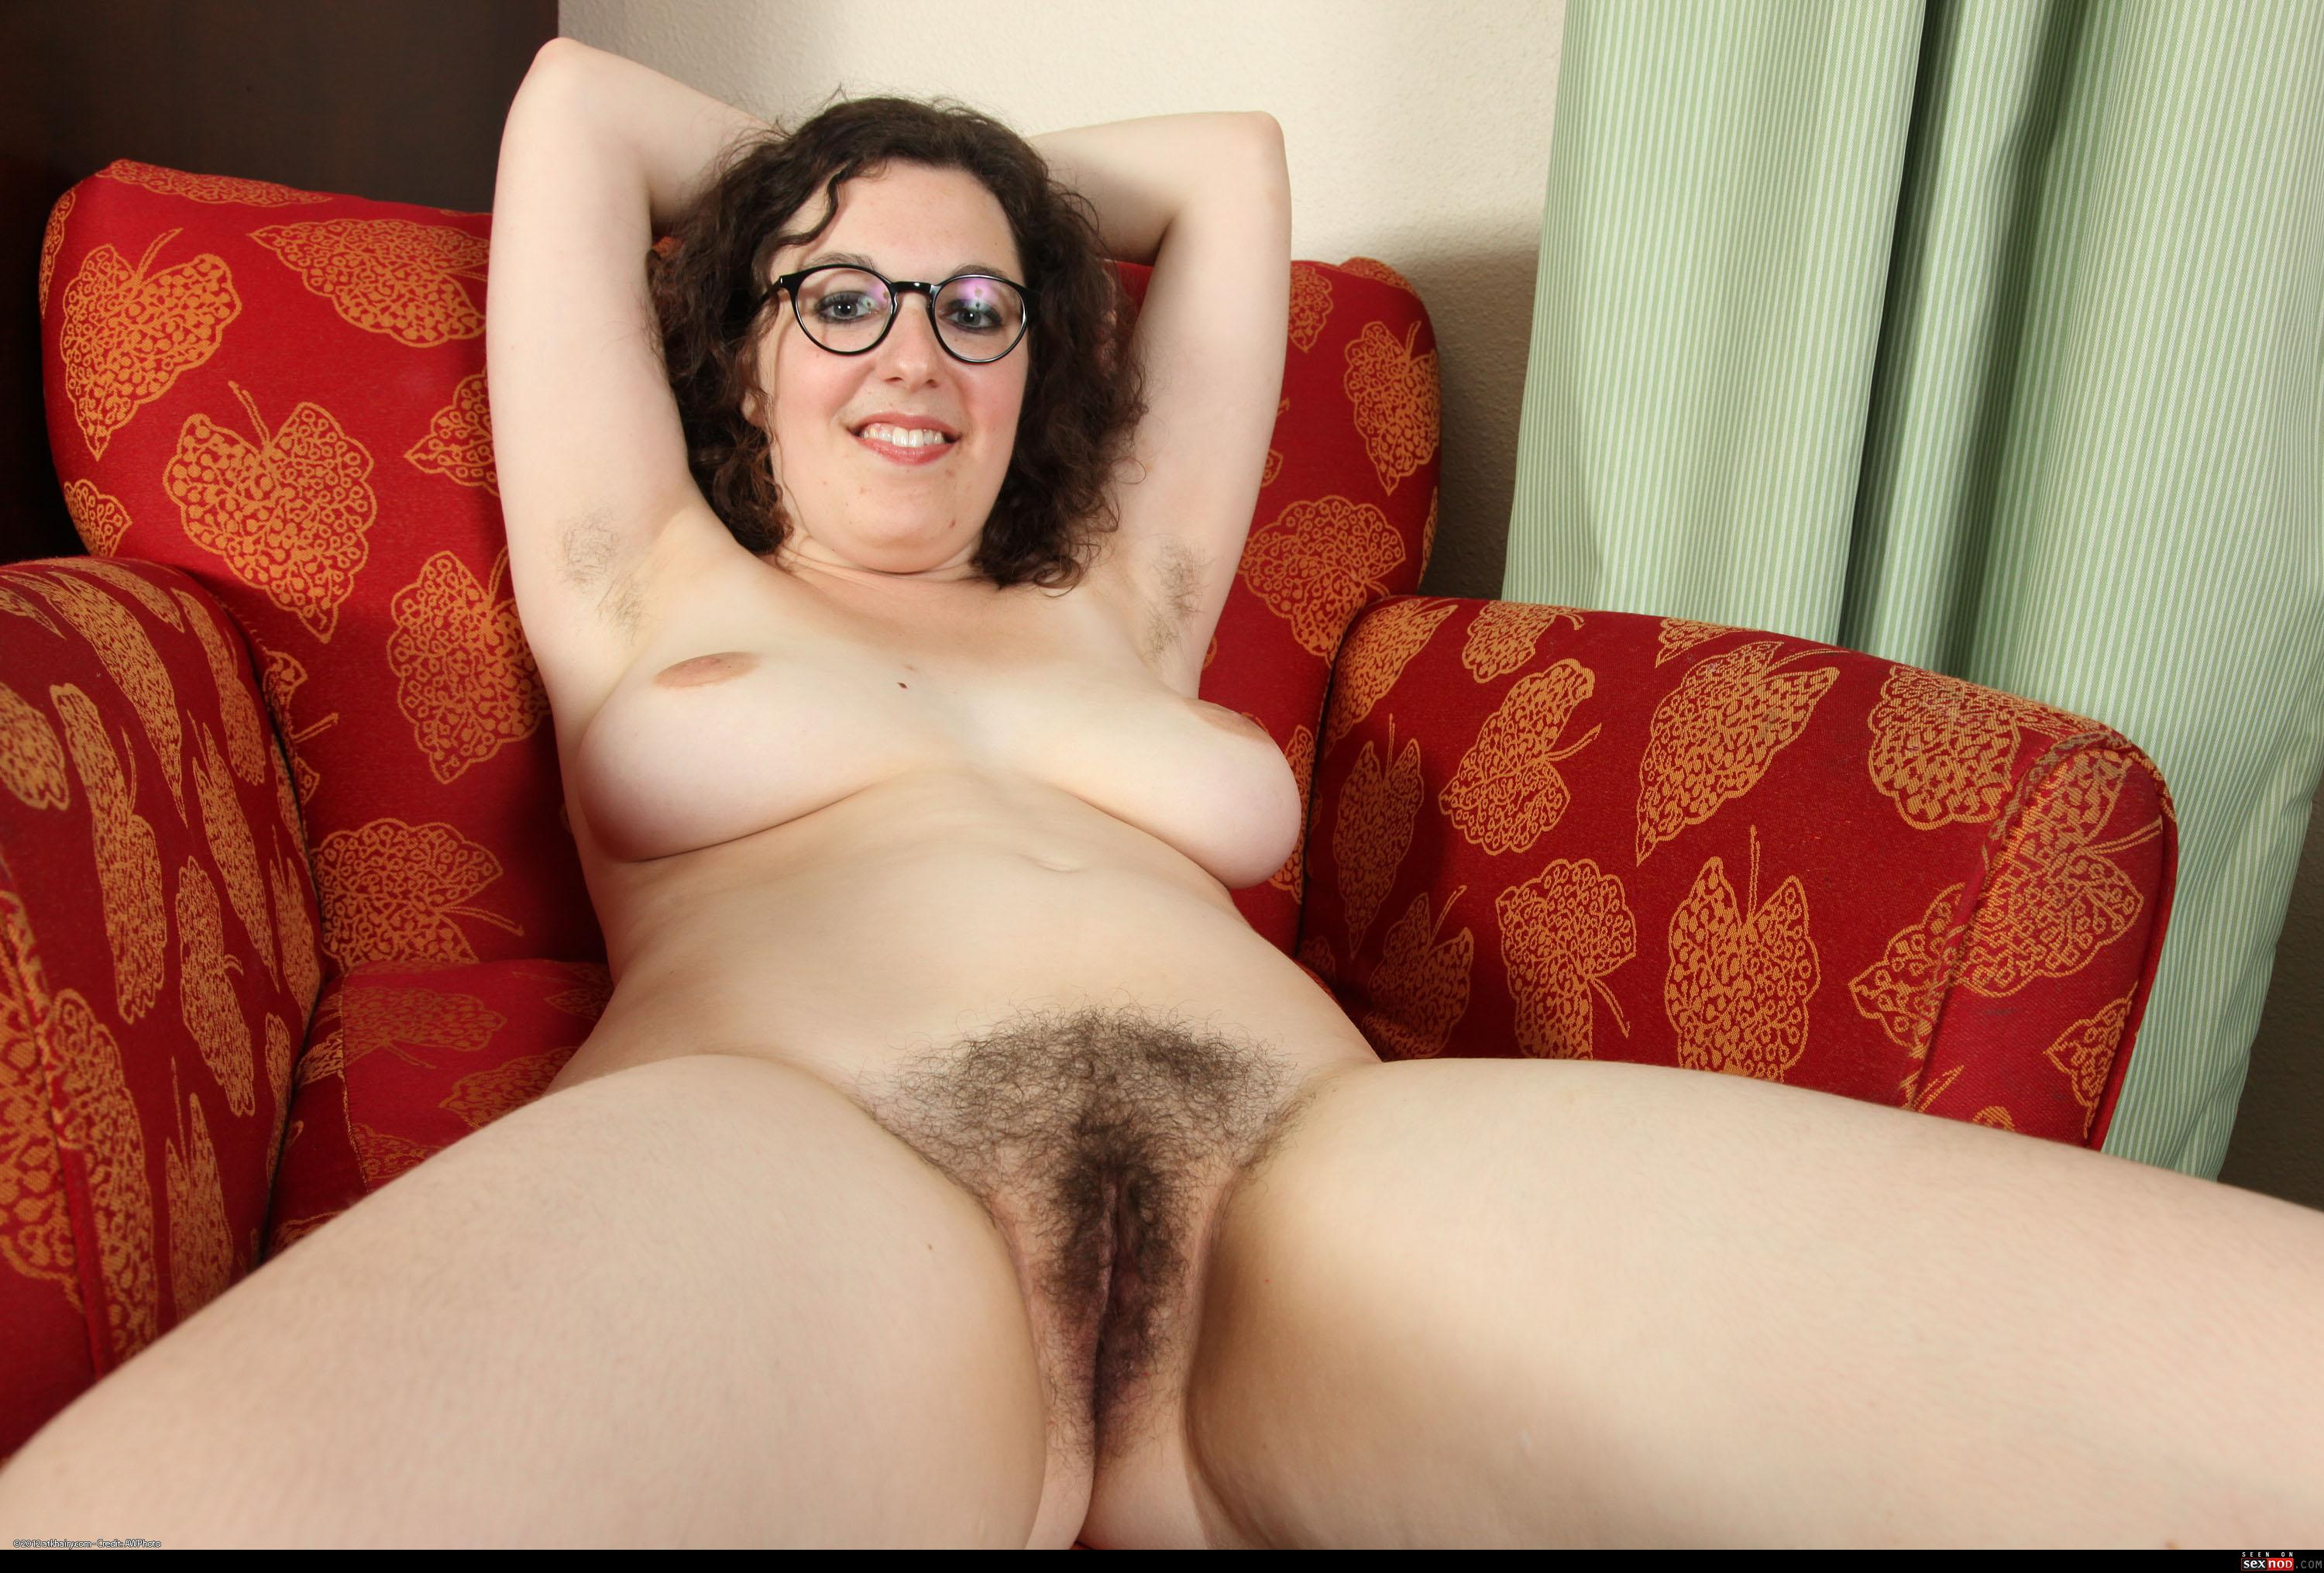 Aunt judys mature hairy pussy